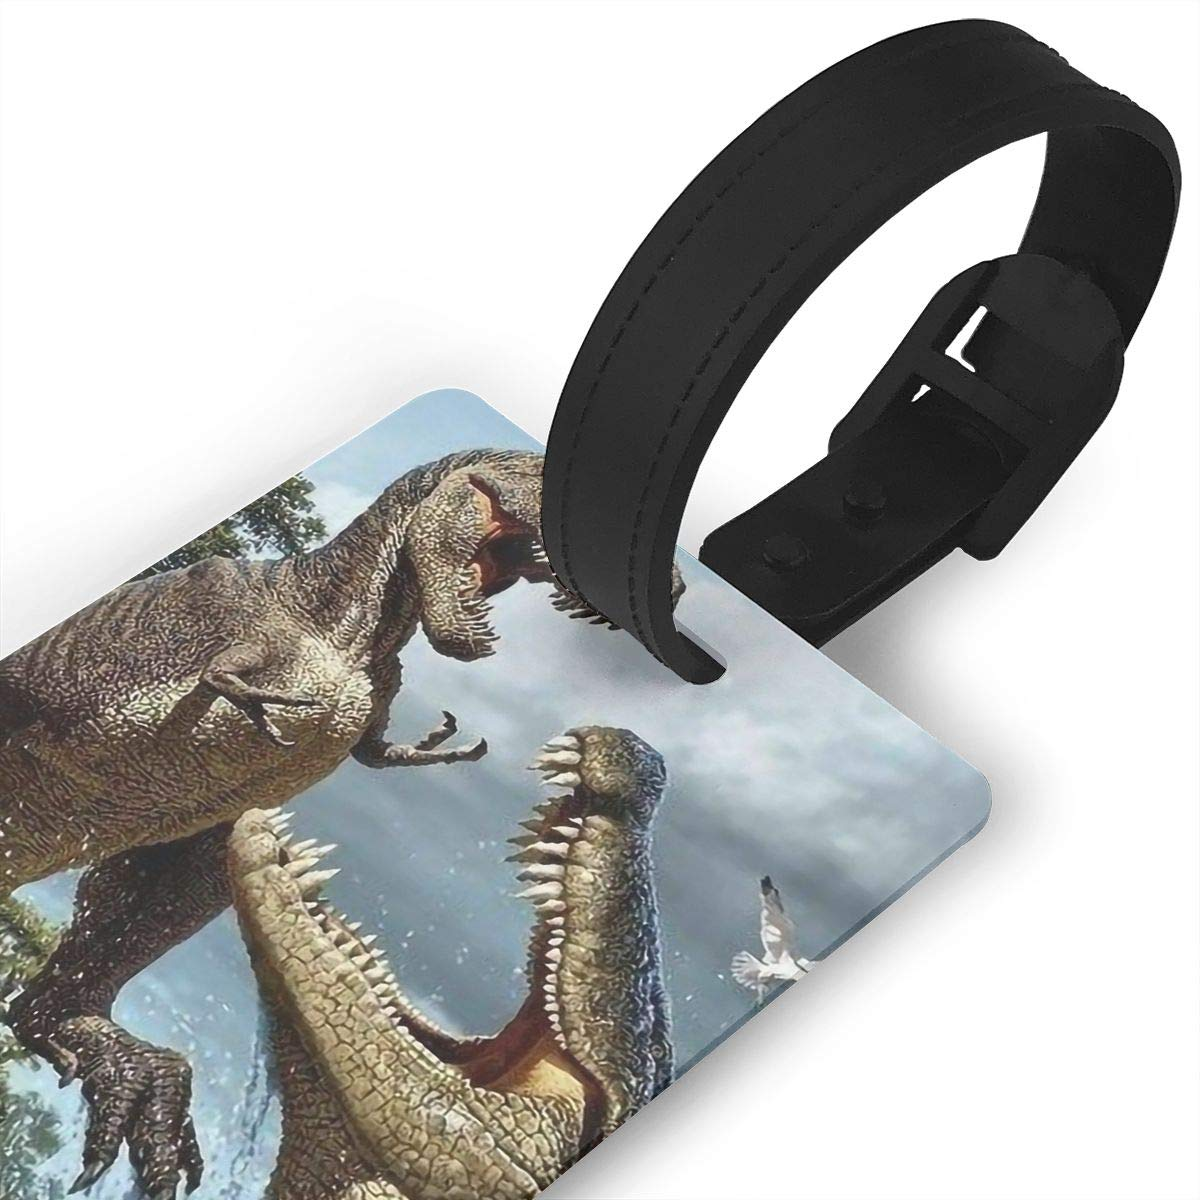 Dinosaur Baggage Tag For Travel Tags Accessories 2 Pack Luggage Tags